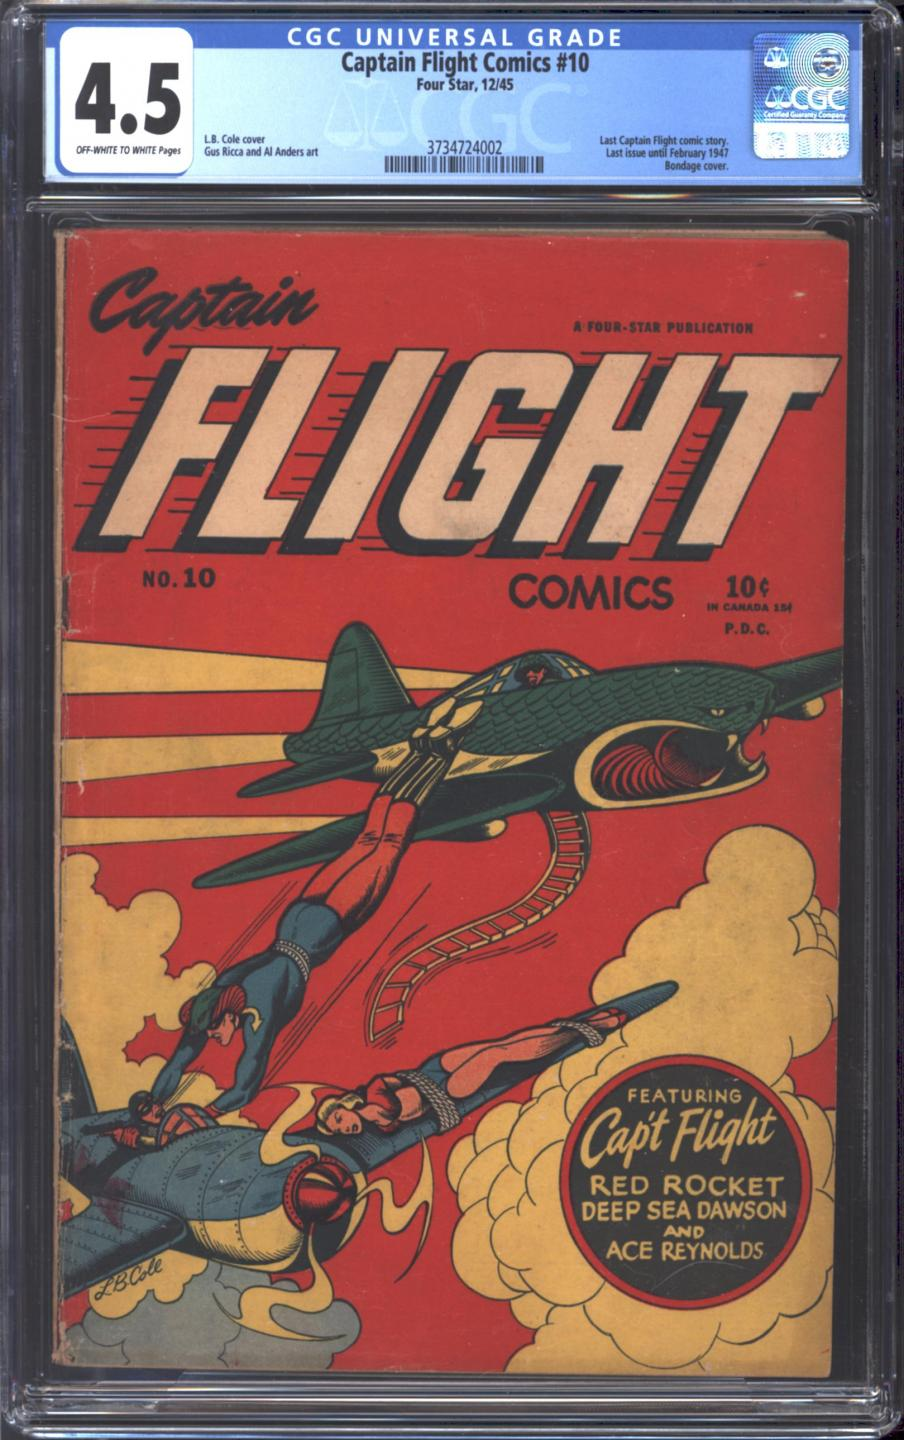 Cover Scan: CAPTAIN FLIGHT #10